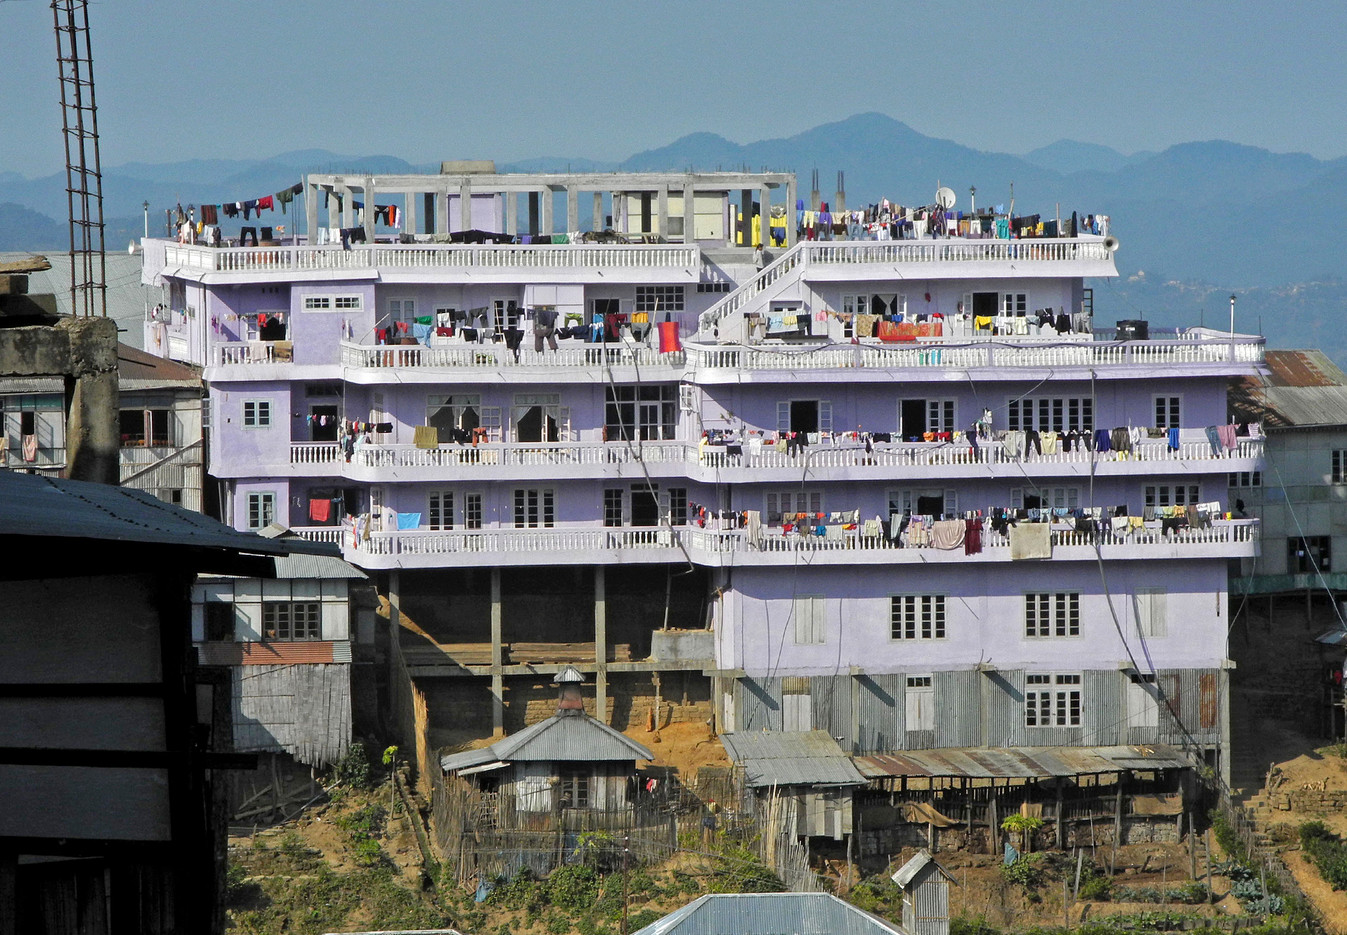 The multi-storey house sits on the side of a mountain.